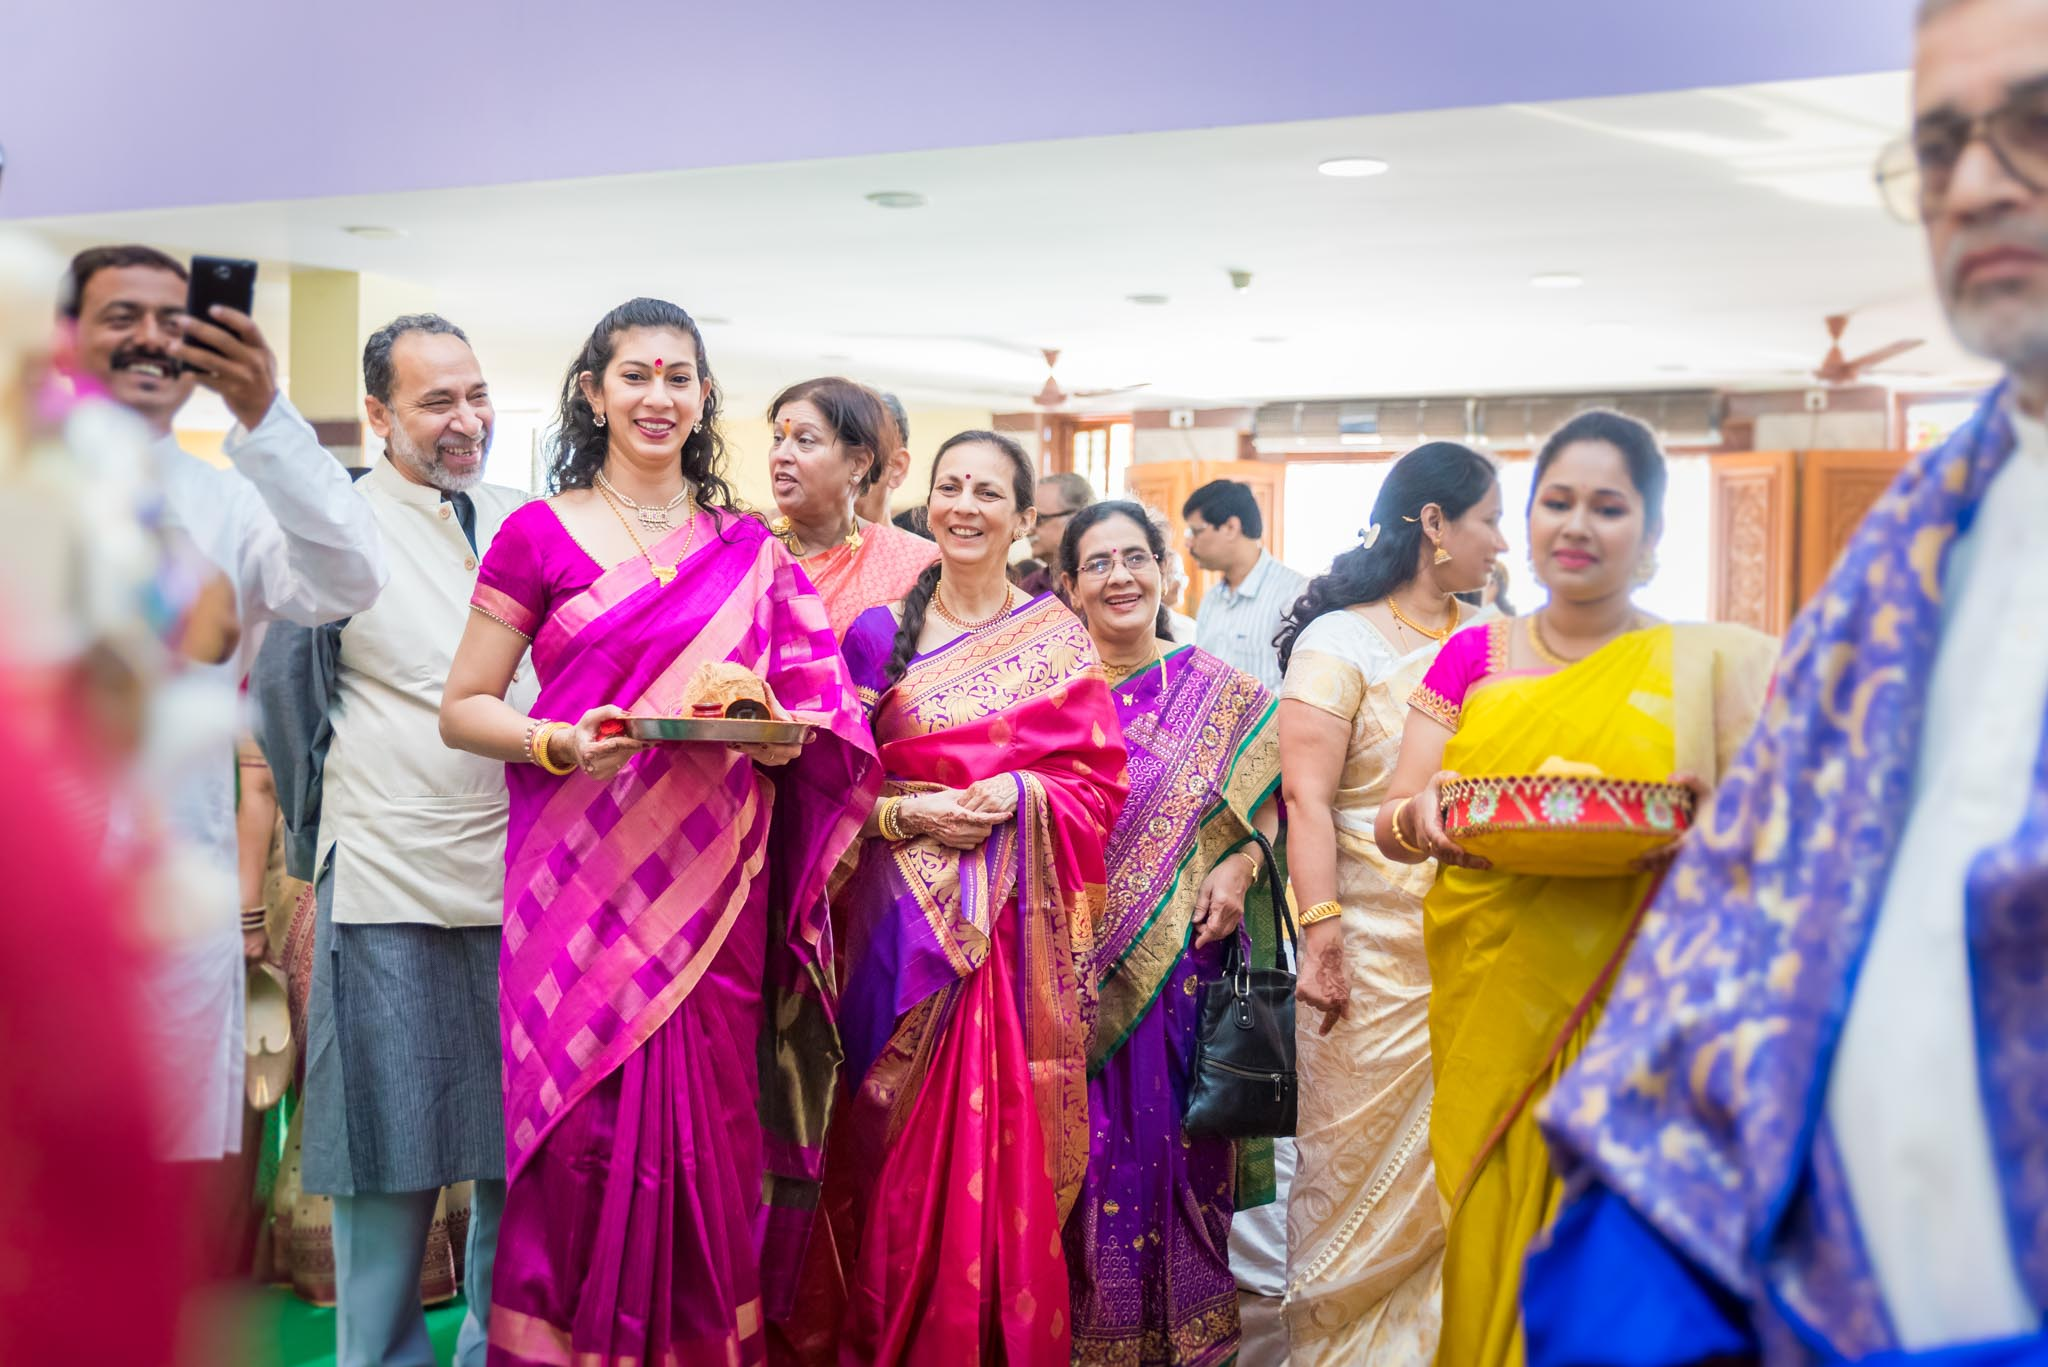 WhatKnot-Candid-Wedding-Photography-Mumbai-Bangalore-139